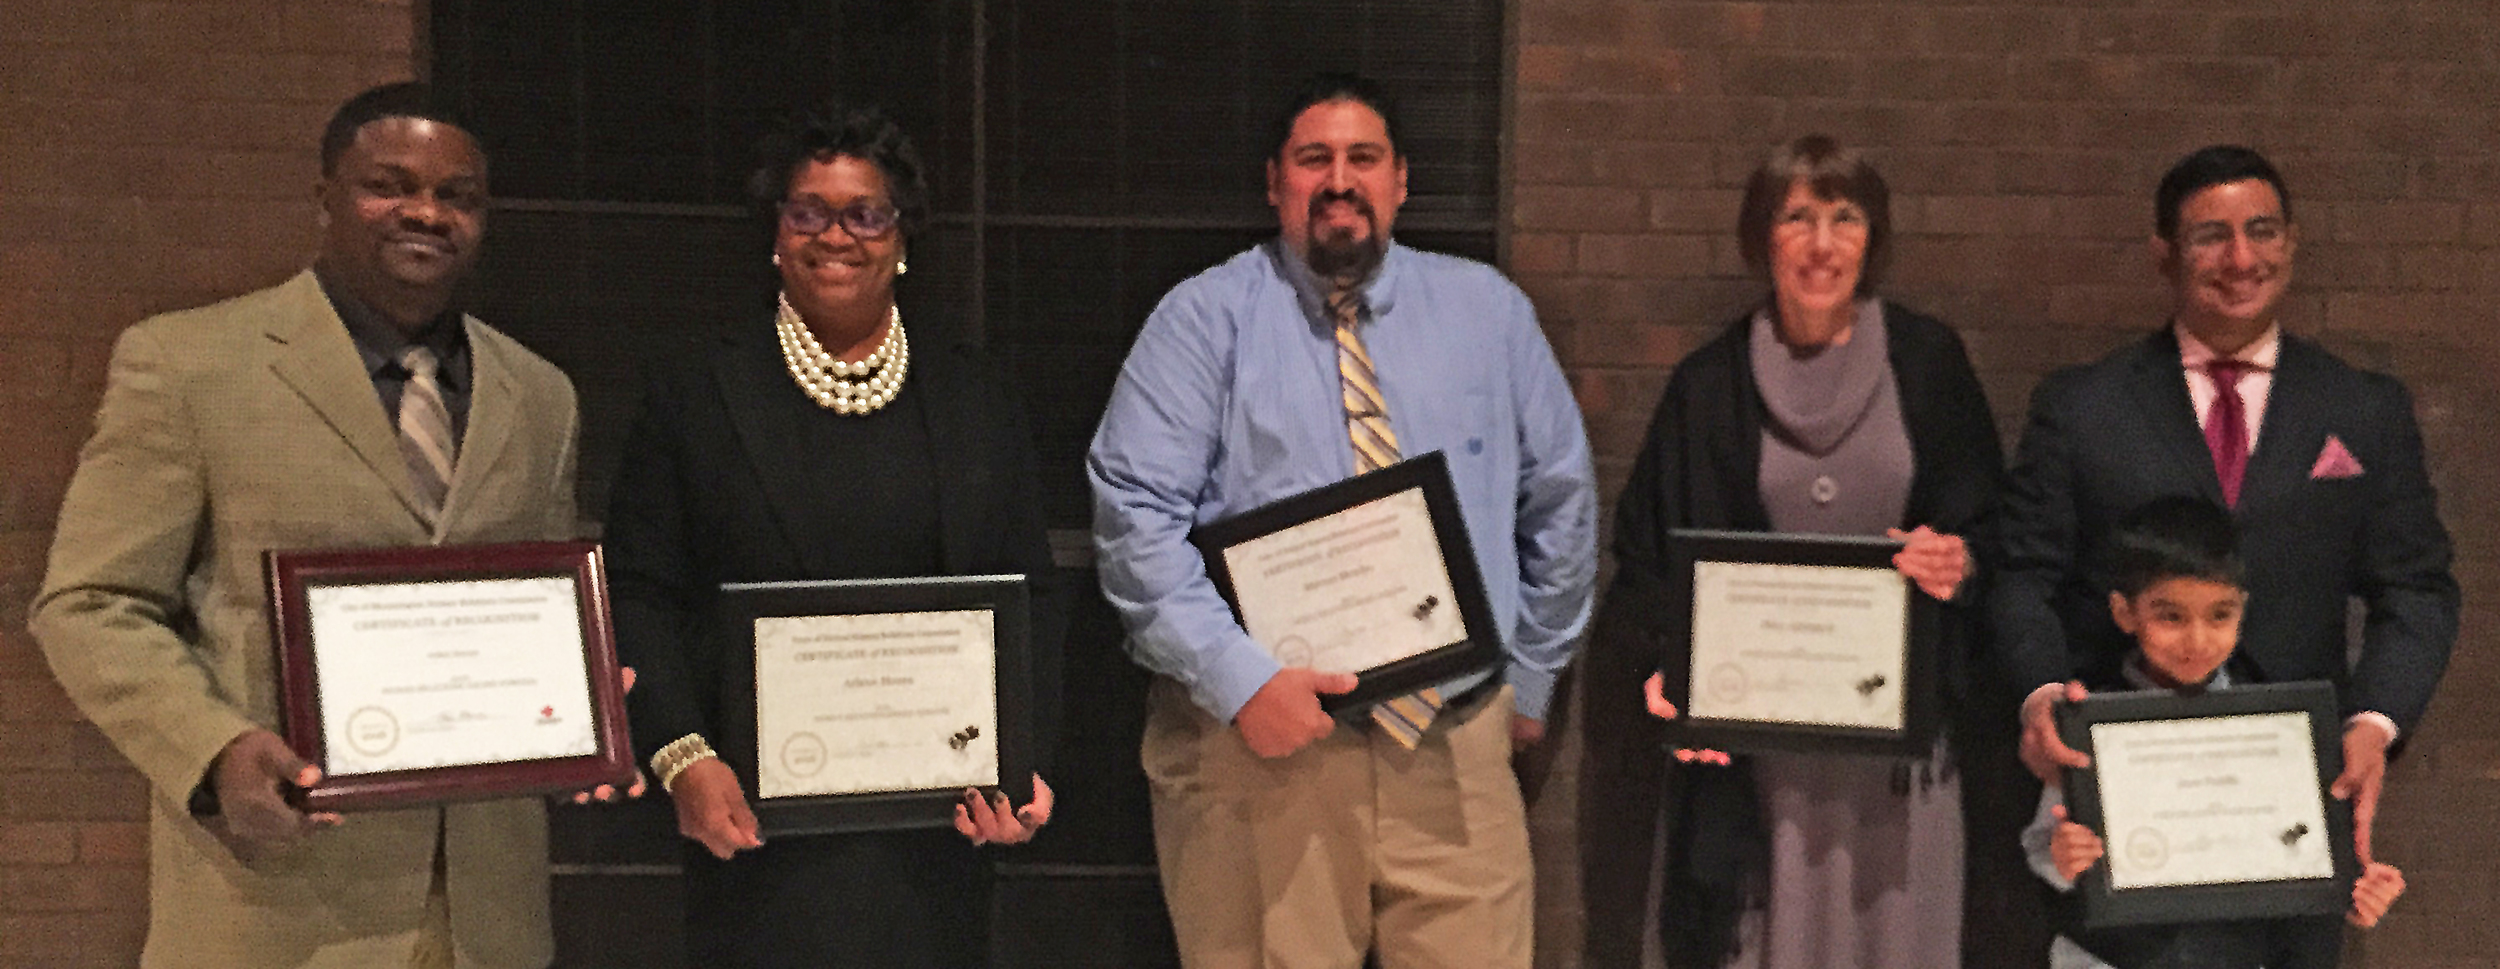 Arthur Haynes, left, and Marcos Mendez, center, with other MLK Human Relations nominees, from left, Arlene Hosea, Not In Our Town: Bloomington/Normal's Mary Aplington, and Jesse Padilla.